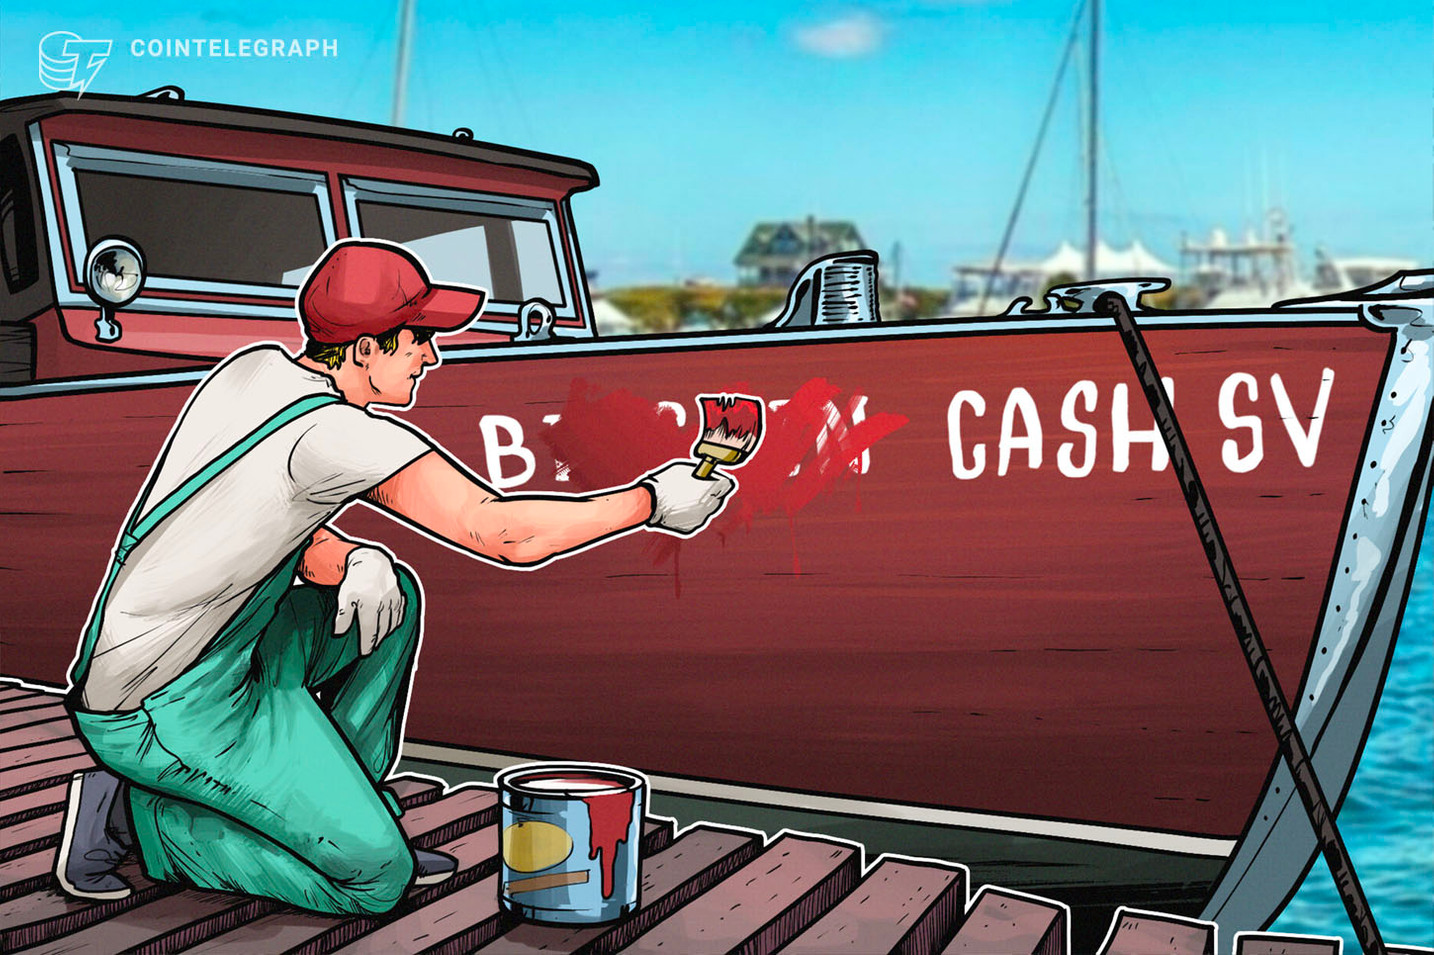 Criptobolsa OKEx lista a Bitcoin Cash ABC bajo el ticker original de Bitcoin Cash